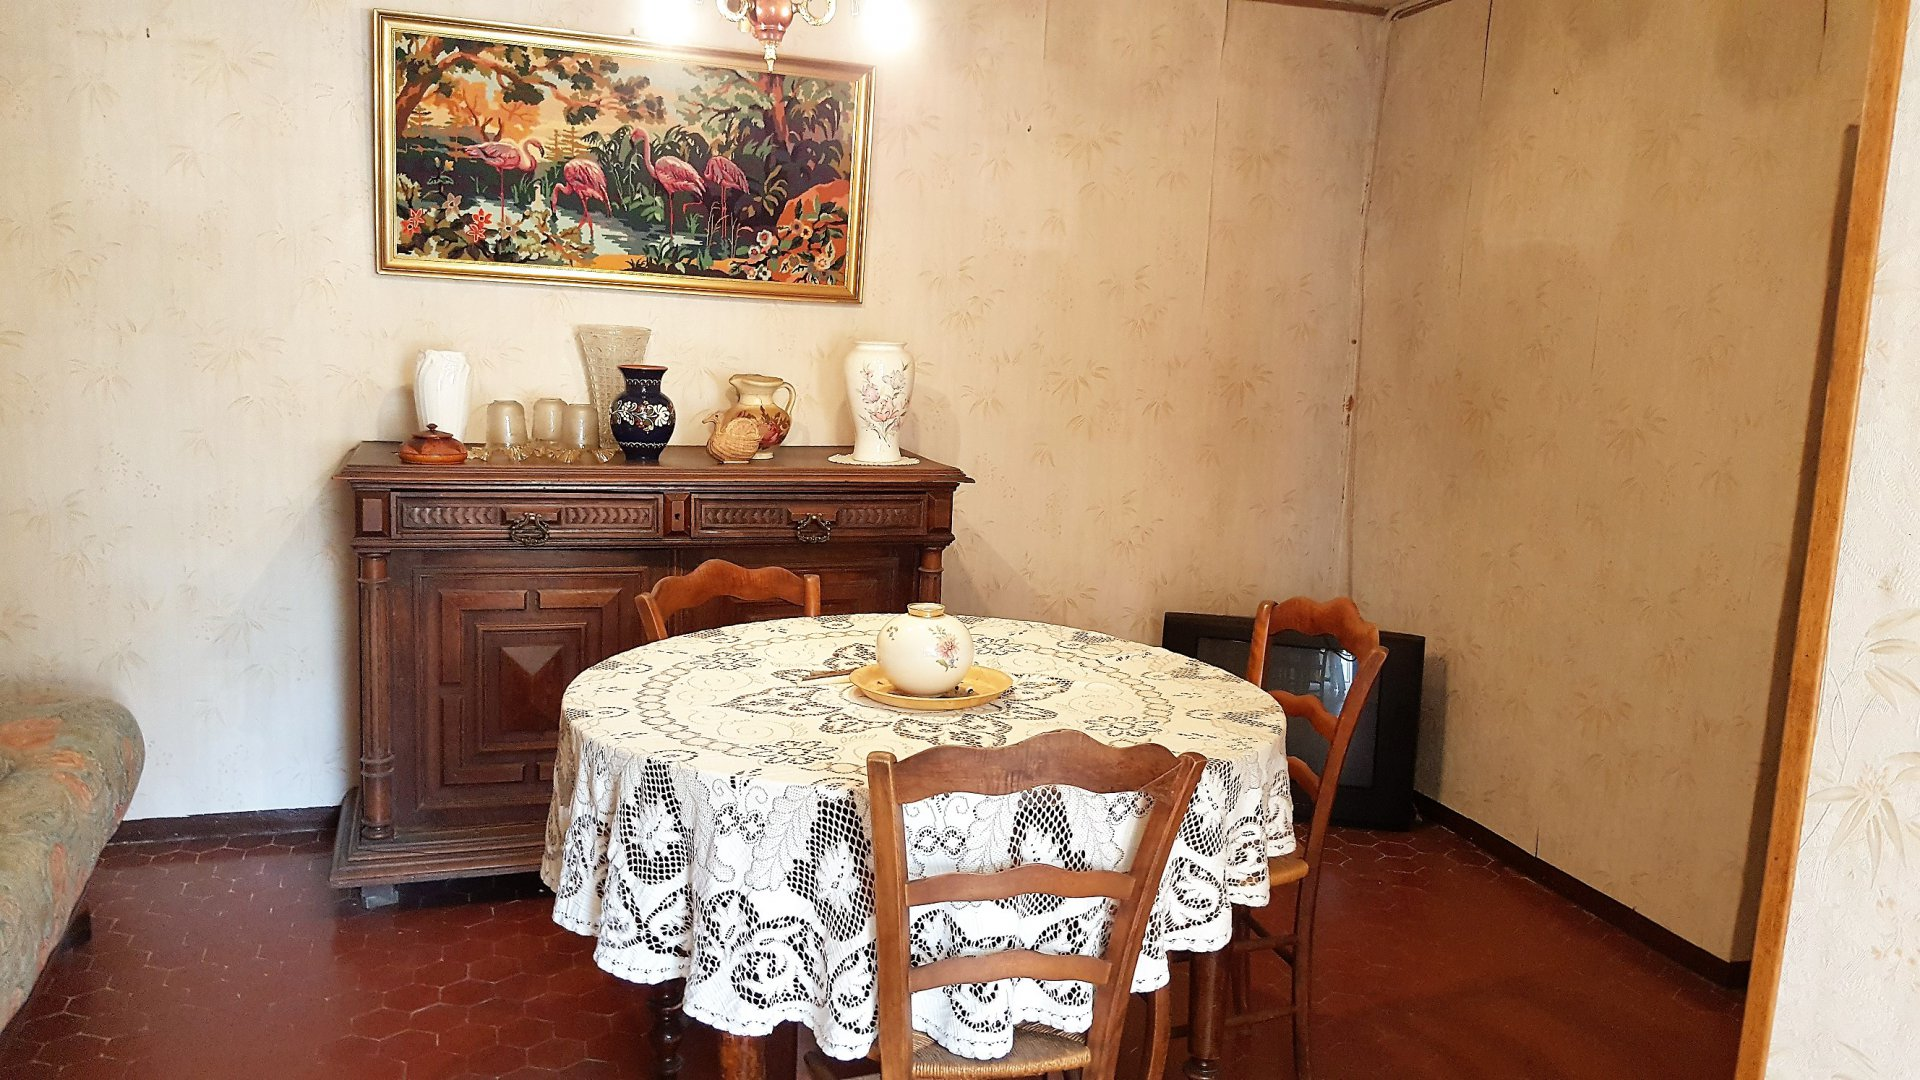 House of village 54m² + 2 storerooms+ Courtyard